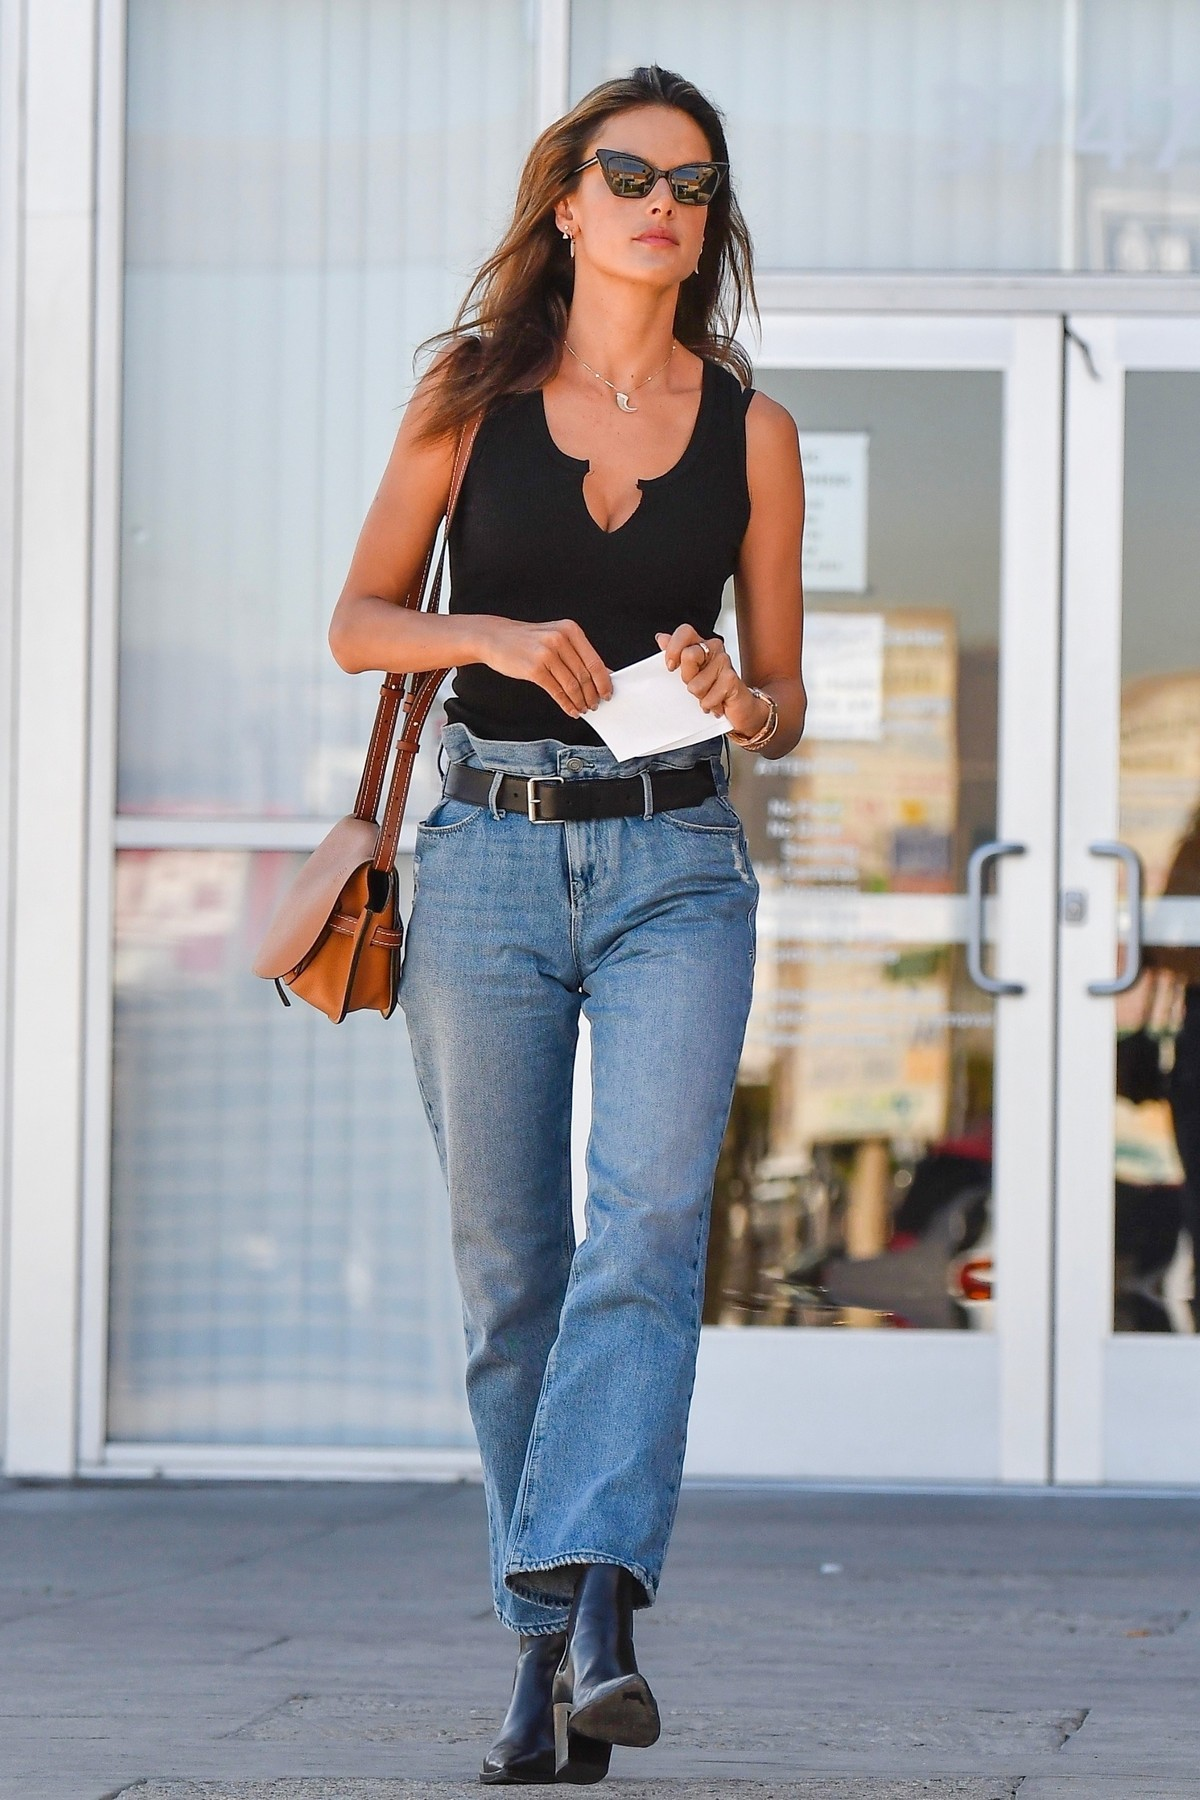 Alessandra Ambrosio in Black Top and Blue Jeans out in Los Angeles 2019/11/18 22